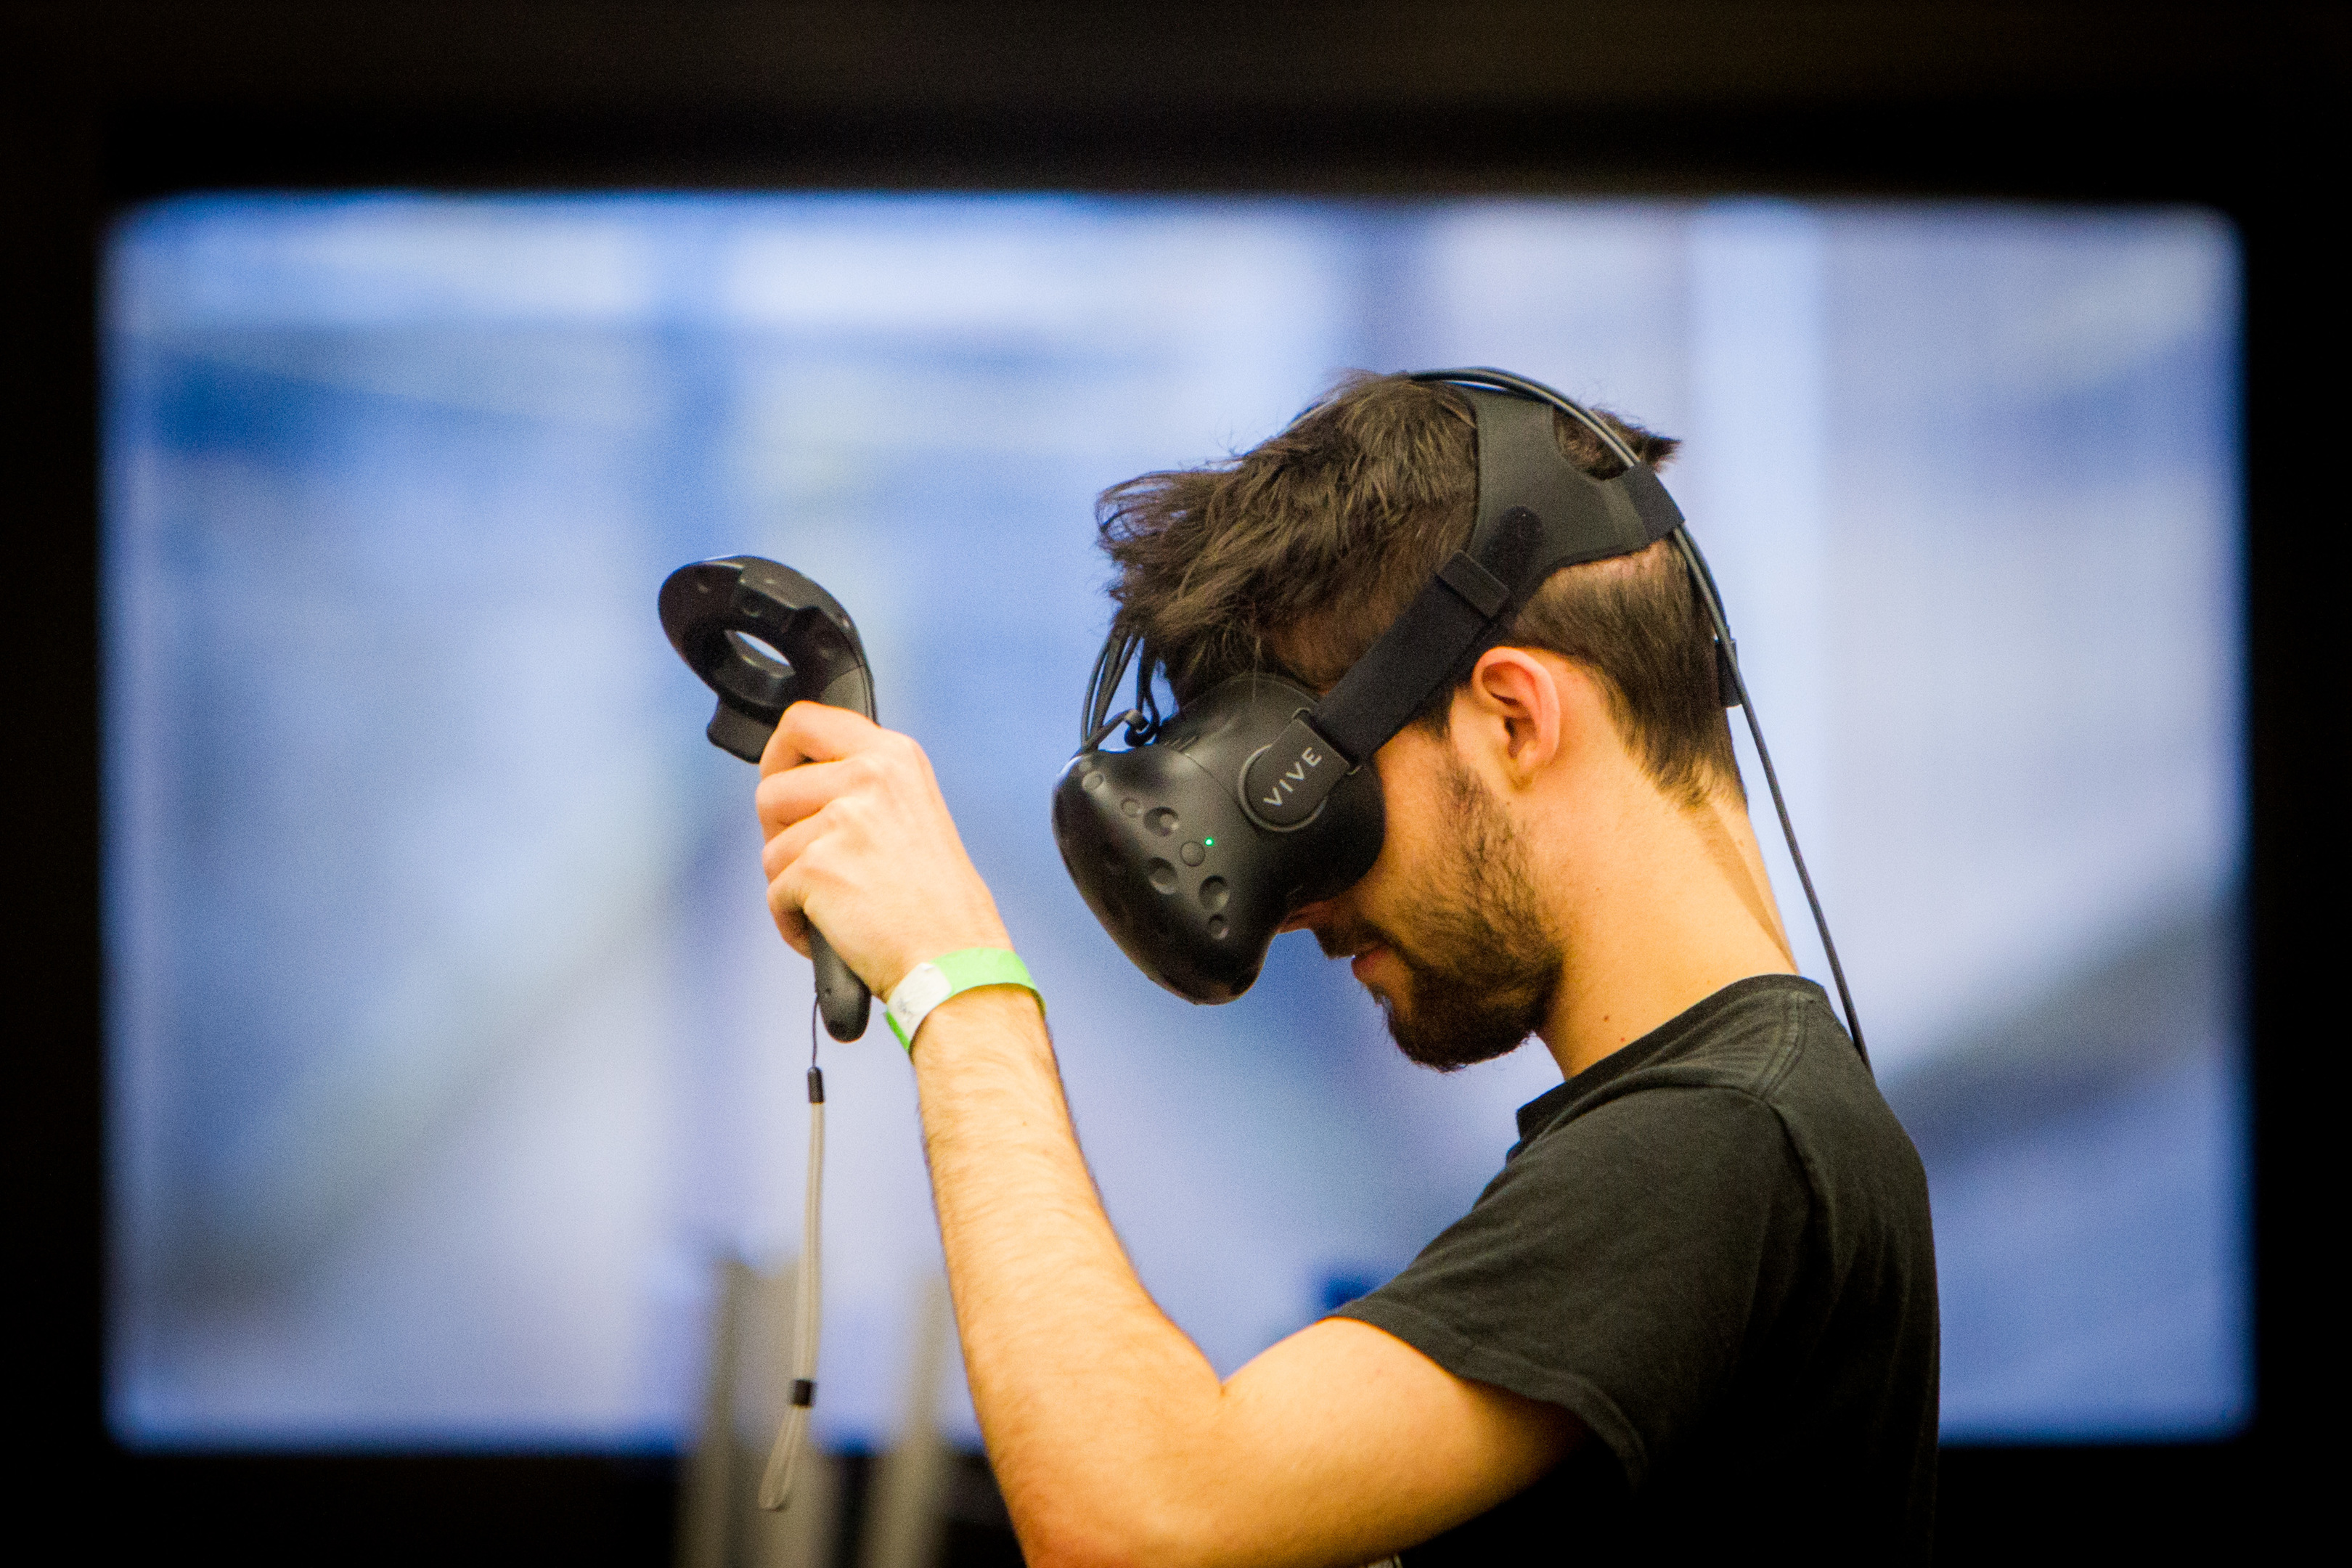 Abertay student Aaron Cameron playing a Virtual Reality game called Think Tank he helped develop at the Games Jam at Abertay University last year.